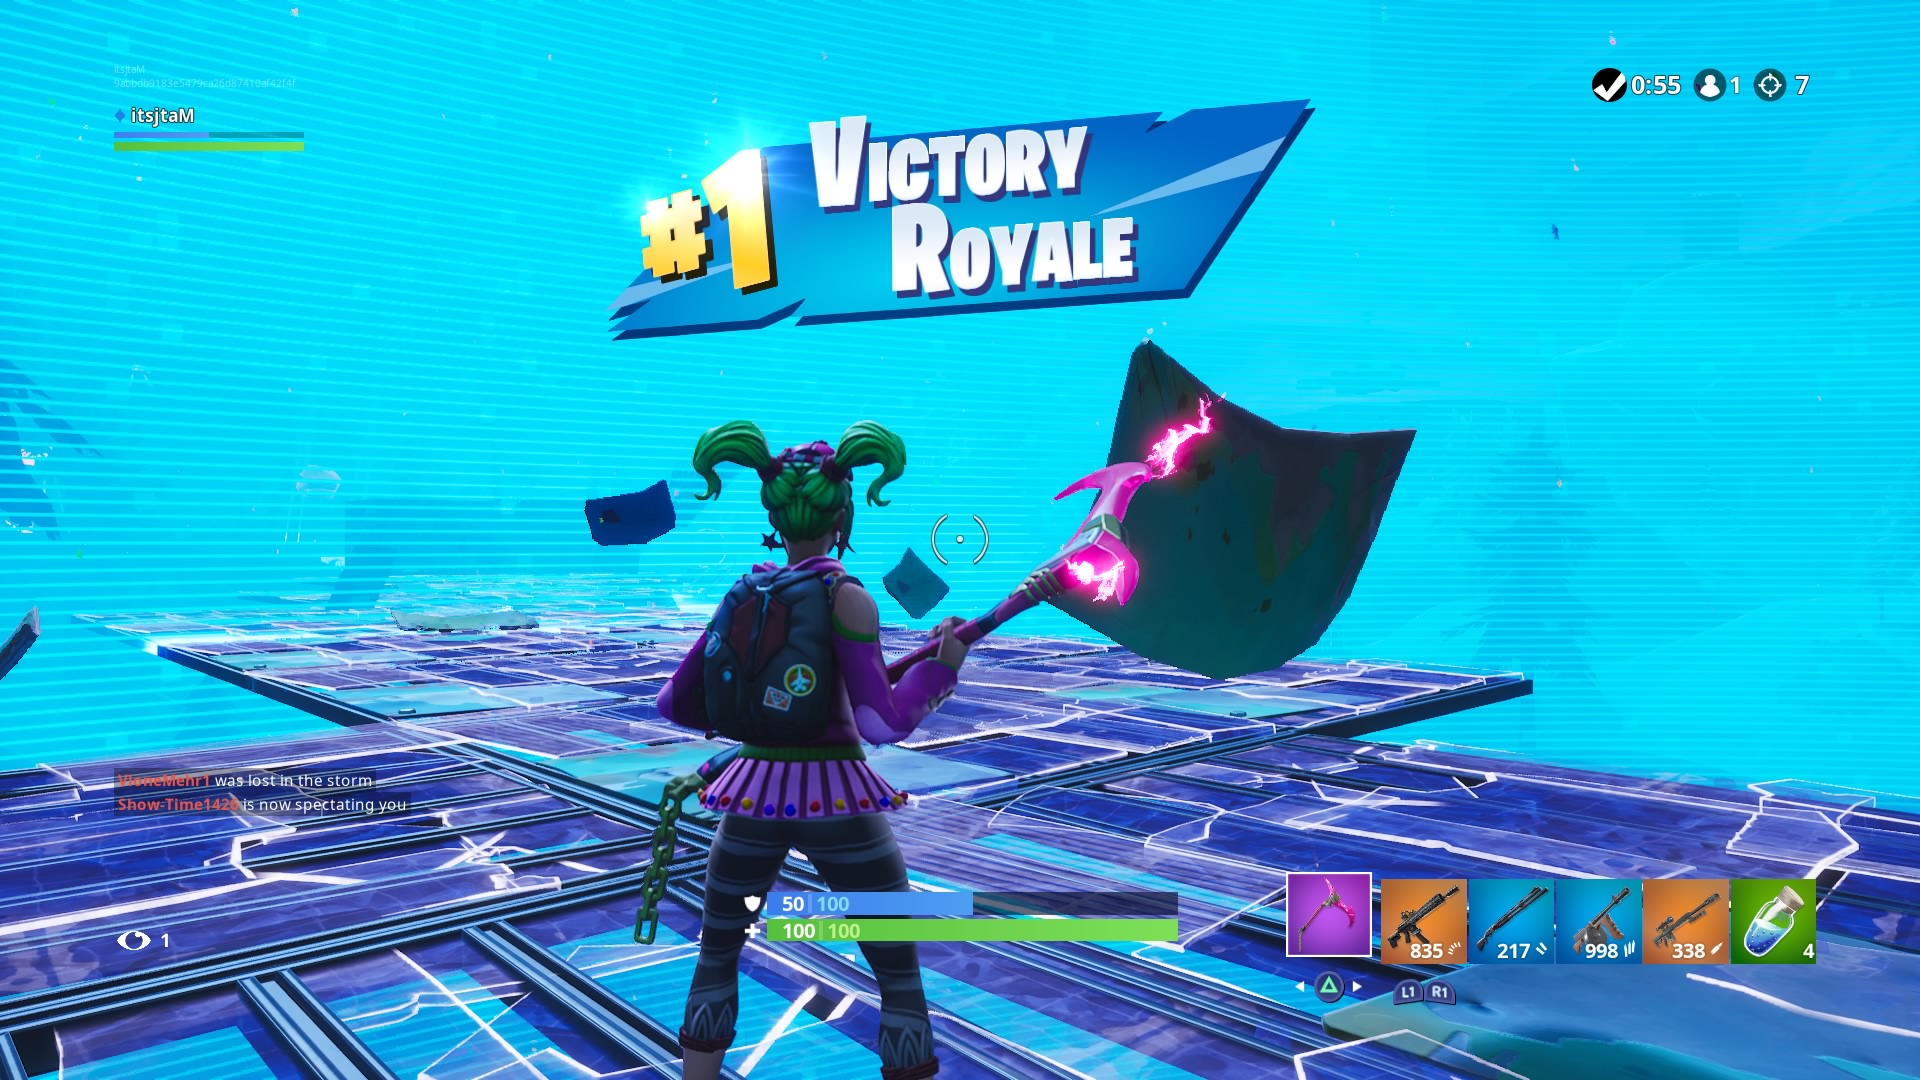 Fortnite Victory Royale Hd Itsjtam Wallpaper 67617 1920x1080px